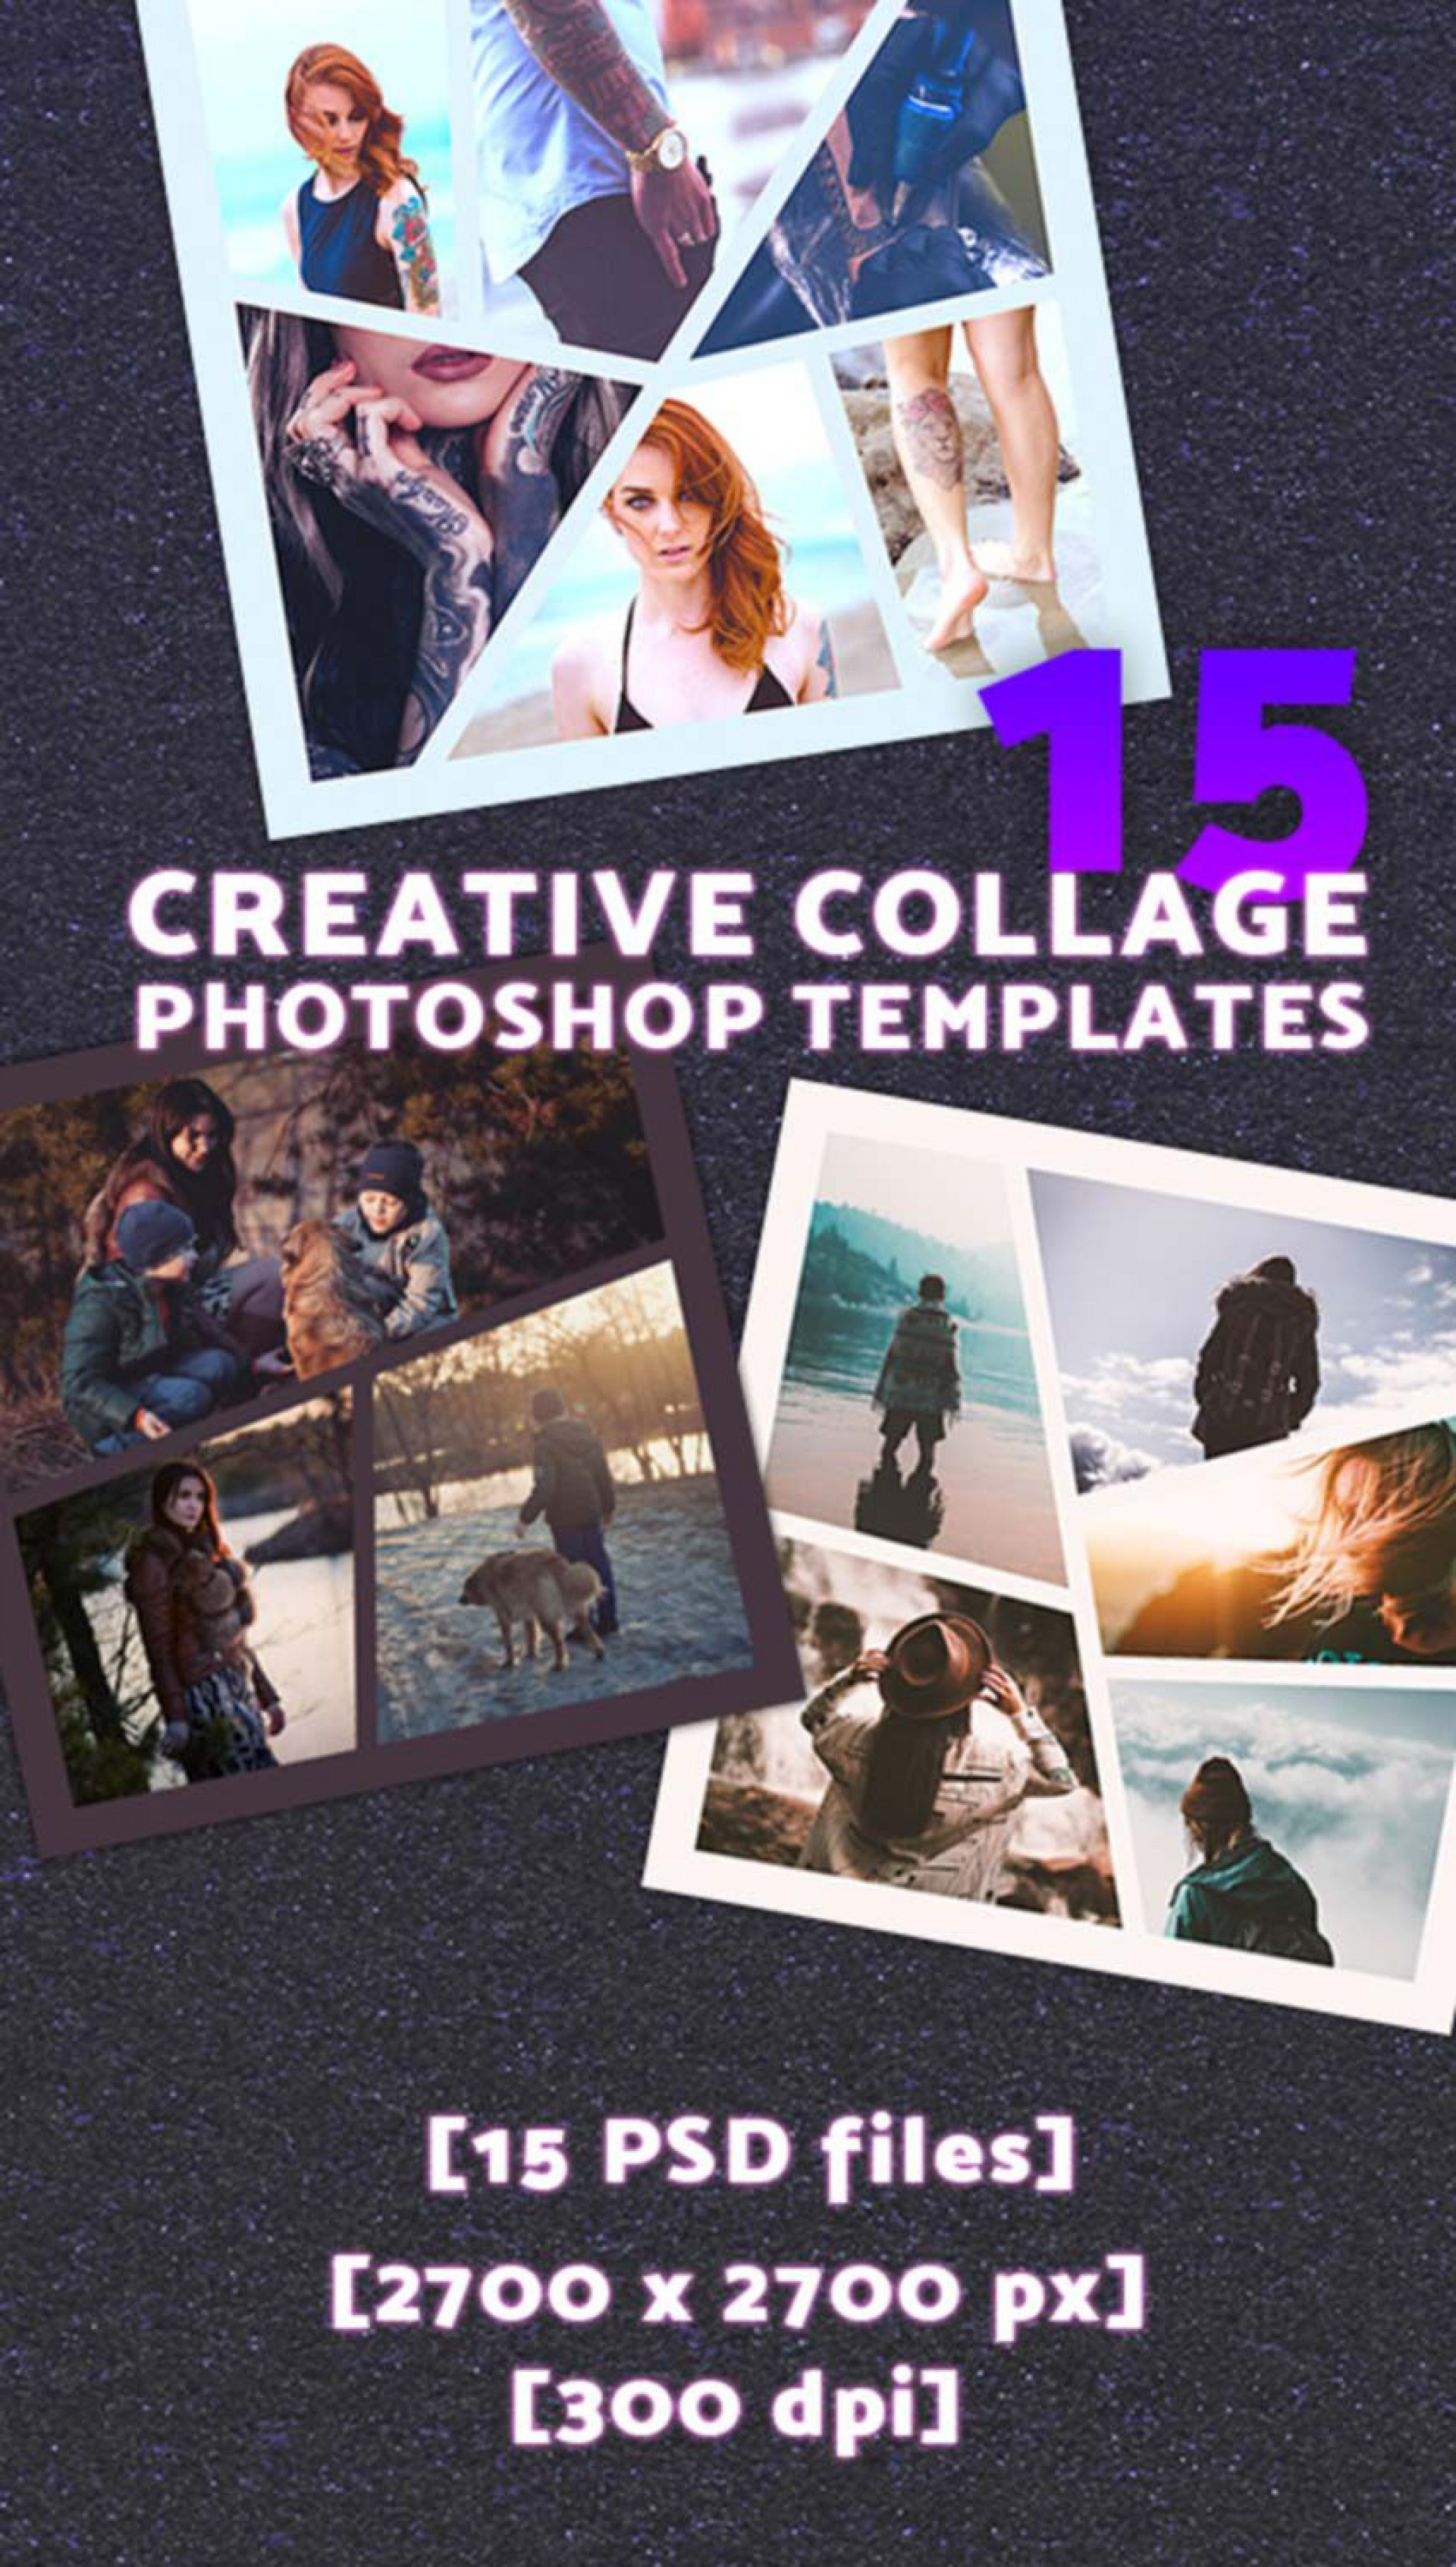 004 Wonderful Free Photo Collage Template No Download High Definition 1920